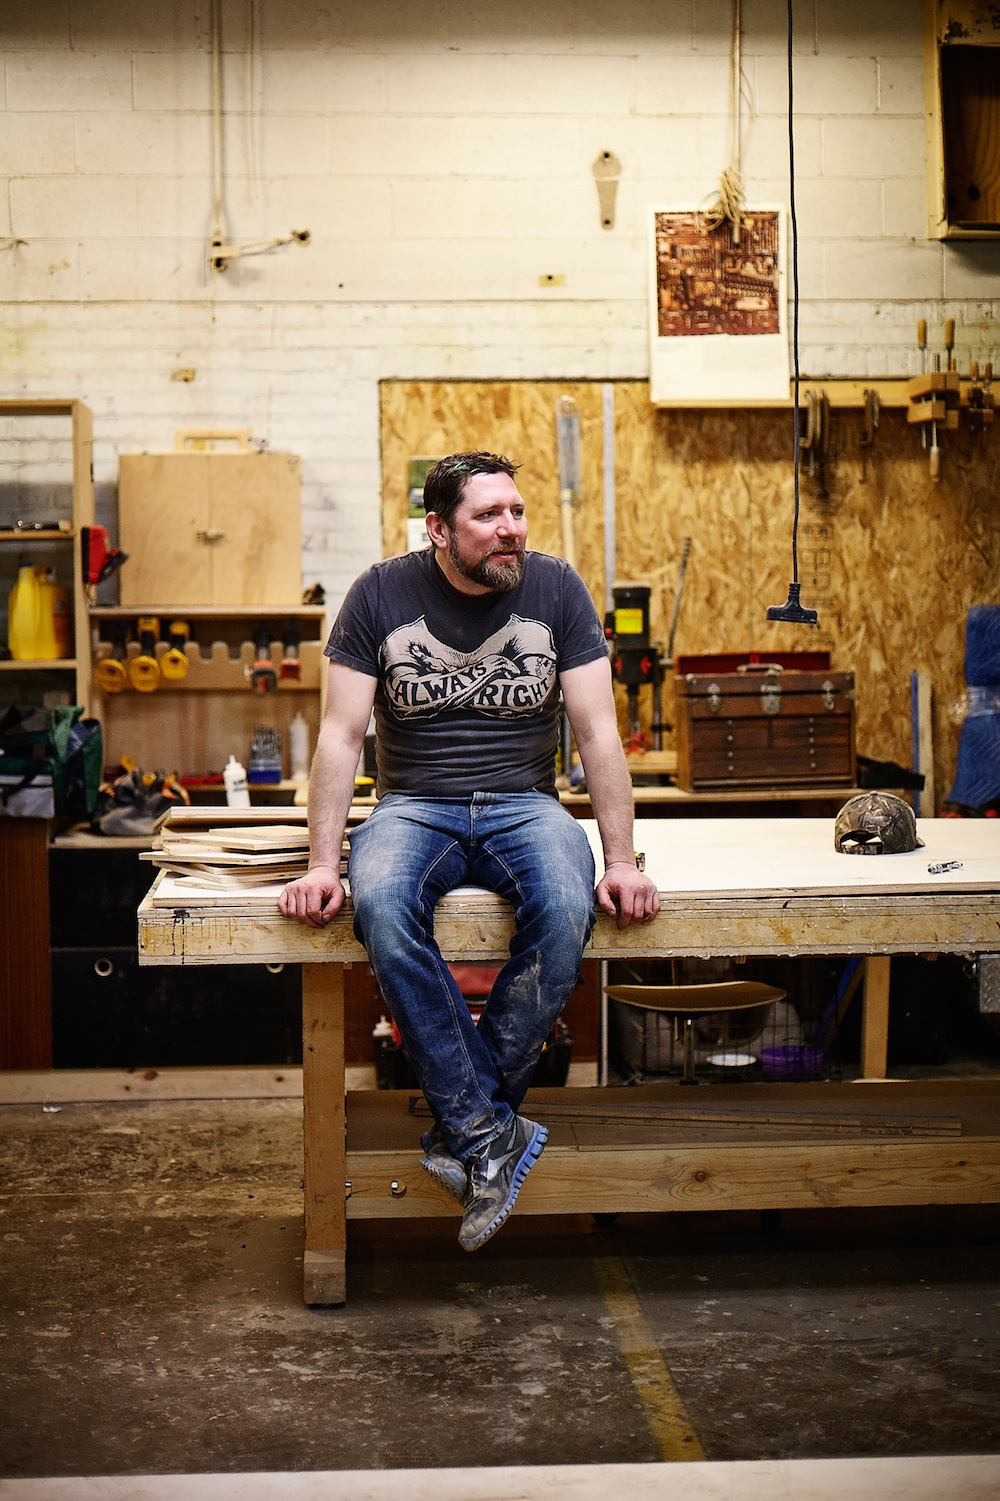 Wood-workshop-taking-break.jpg